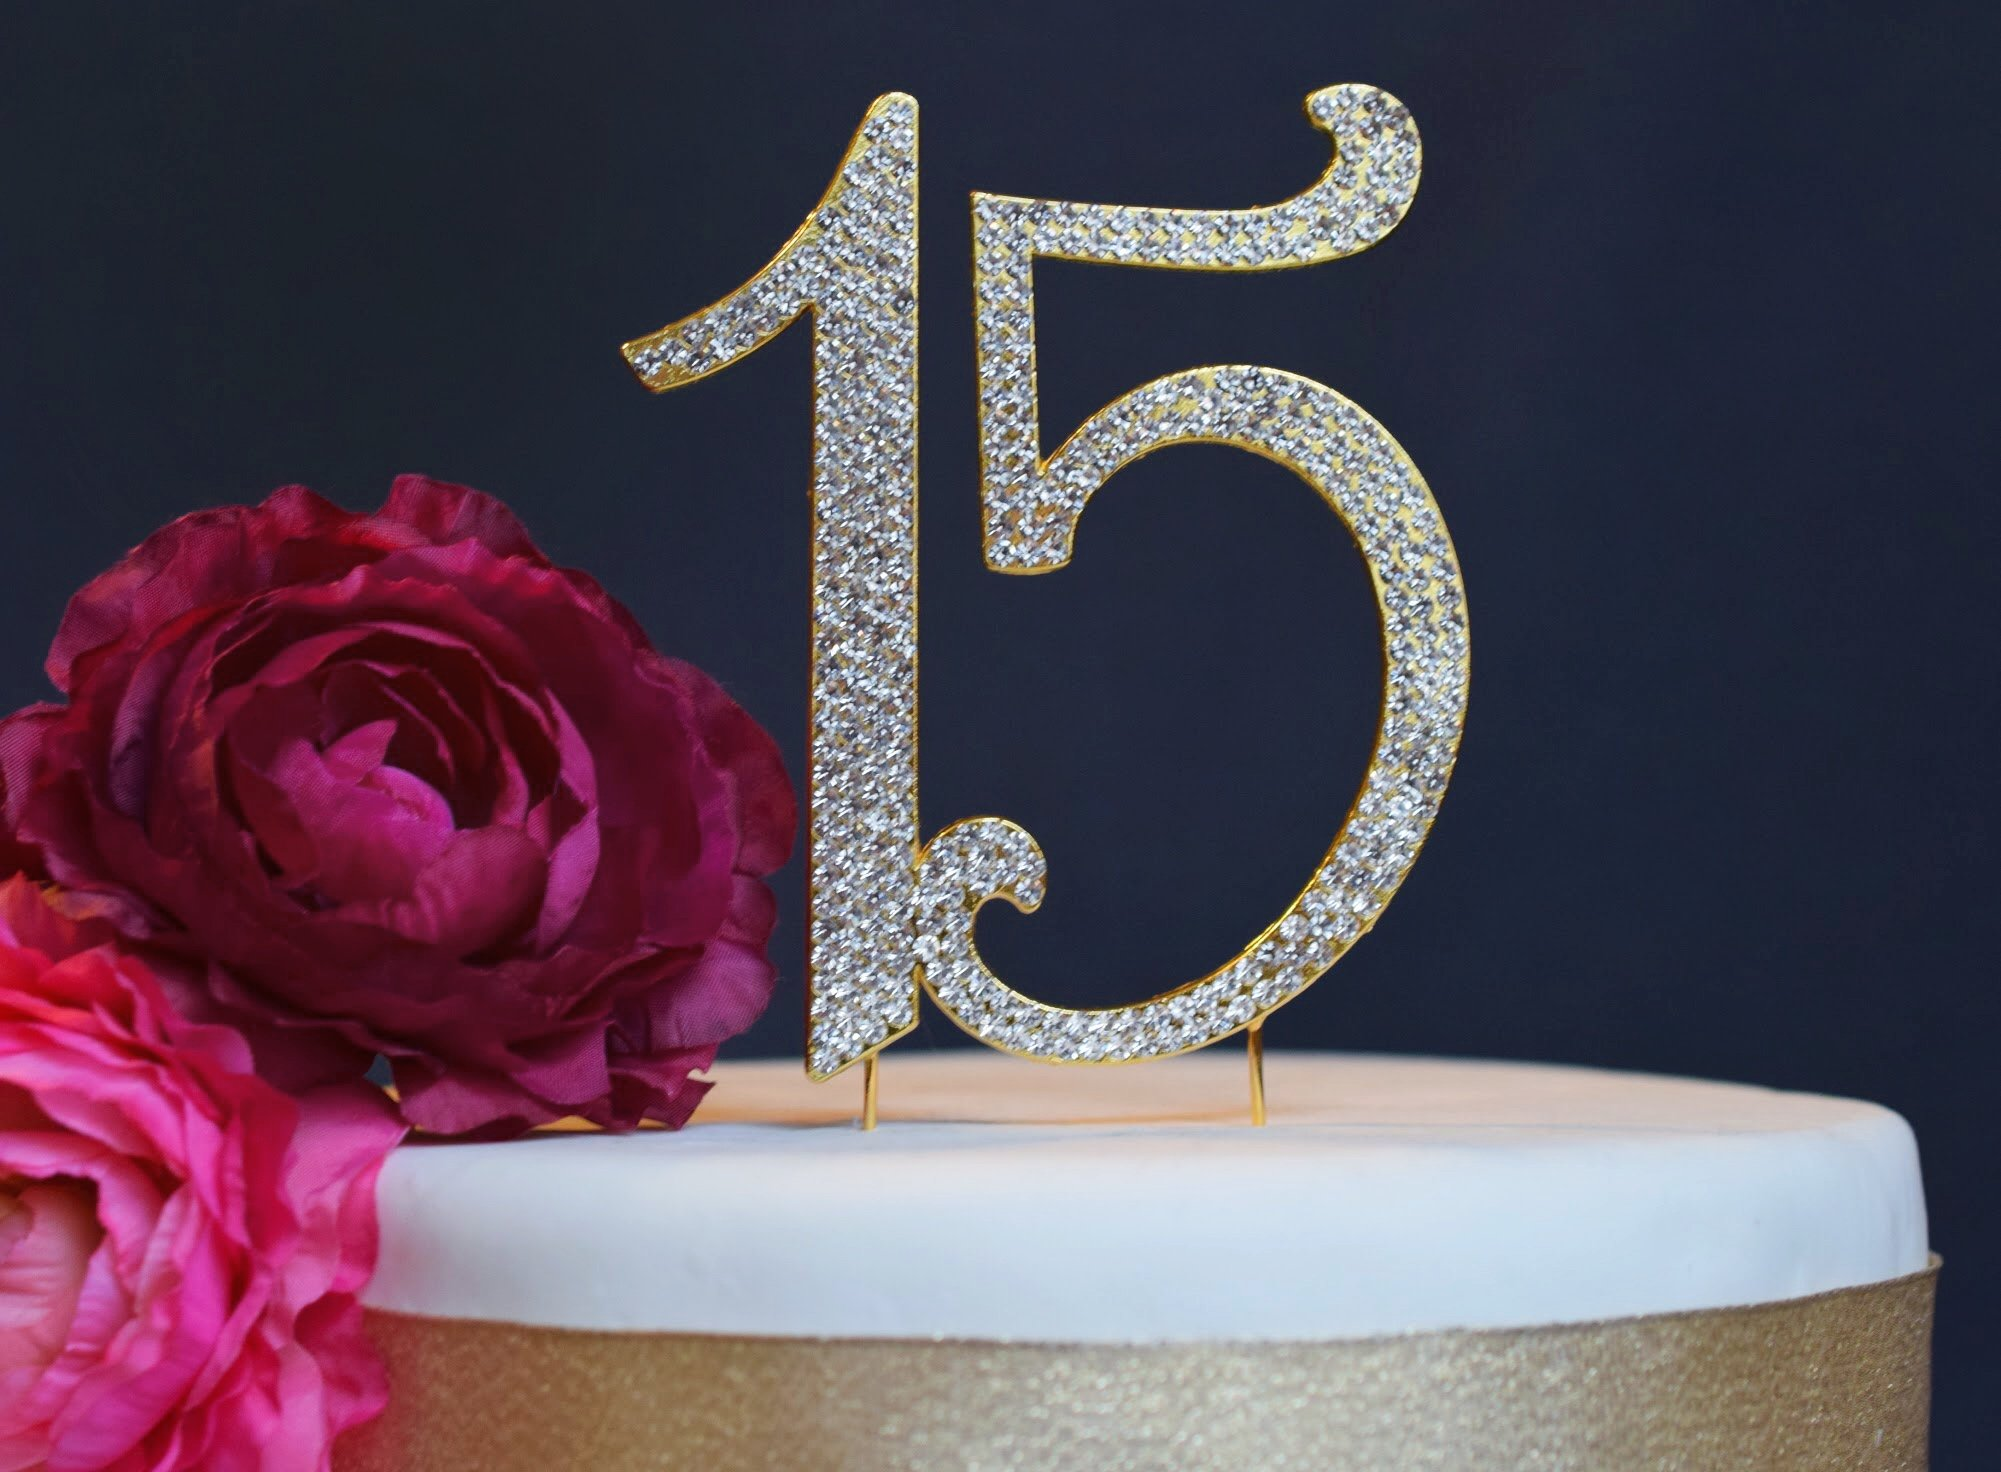 15 GOLD Quinceañera Cake Topper | Premium Sparkly Crystal Rhinestones | 15th Birthday or Anniversary Party Decoration Ideas | Quality Metal Alloy | Perfect Keepsake (15 Gold)